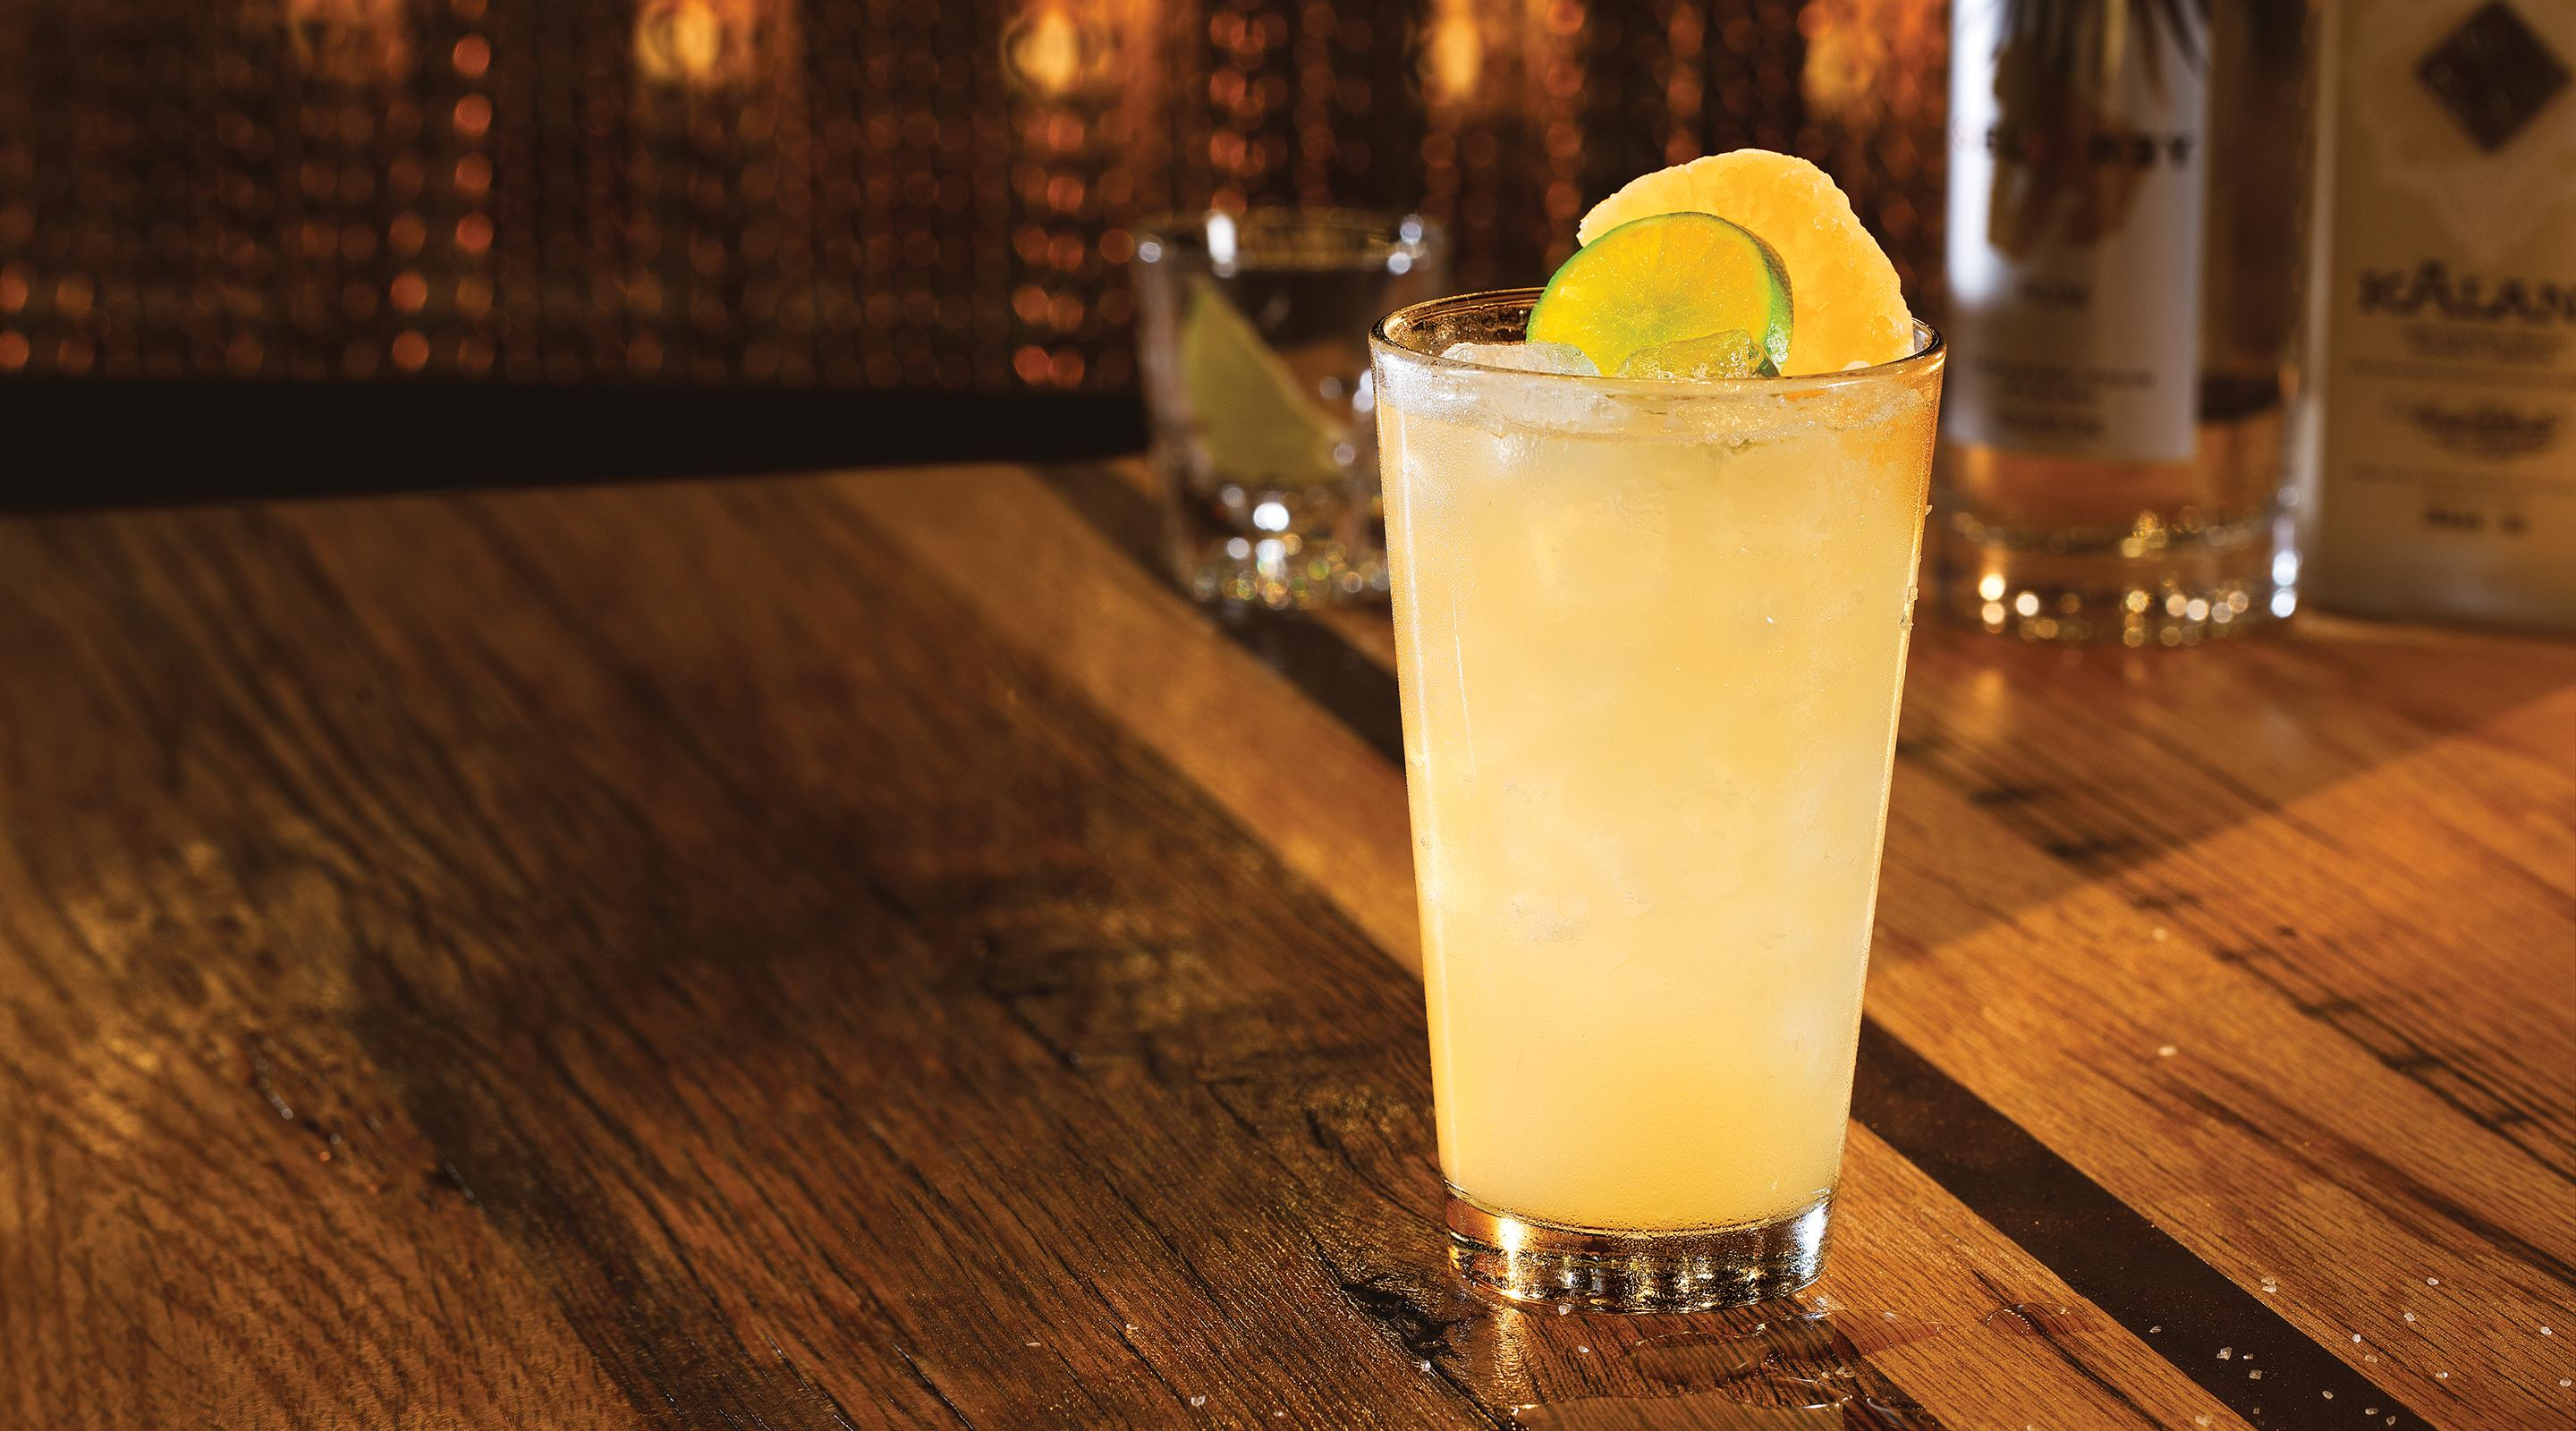 Available classic or spicy cimmarón blanco tequila, lime, agave nectar, salt or no salt.